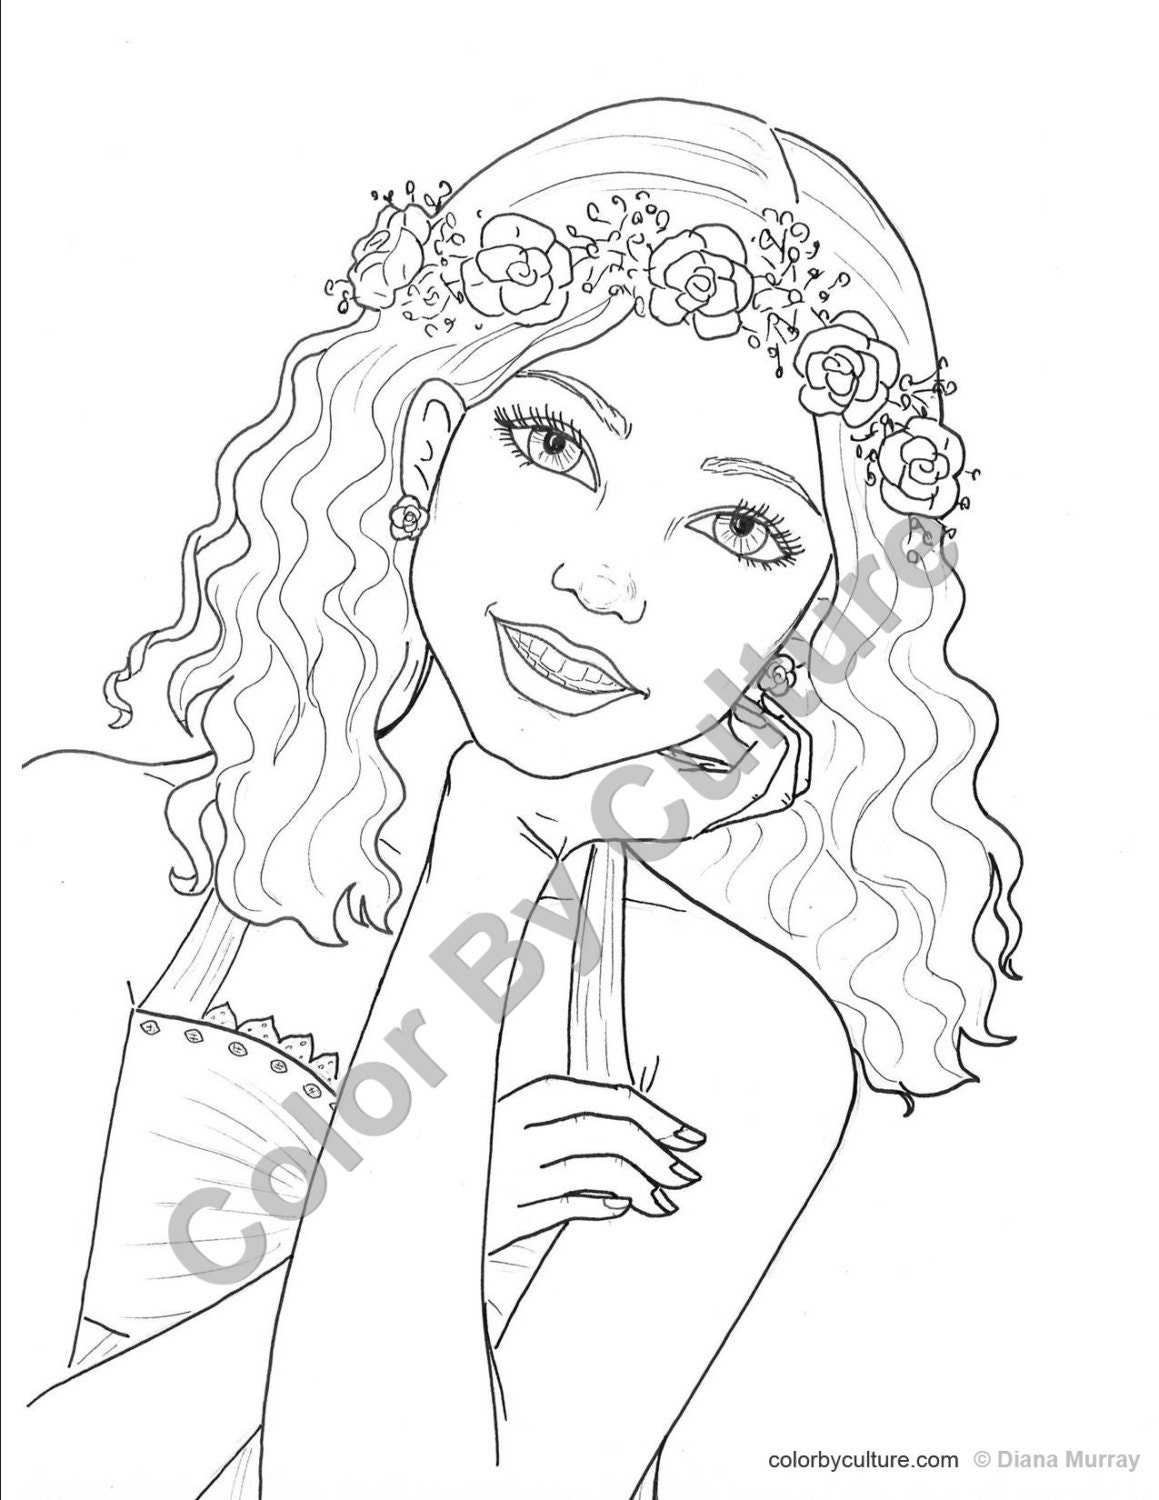 coloring pages for teens online | Fashion Coloring Page Girl with Flower Wreath Coloring Page